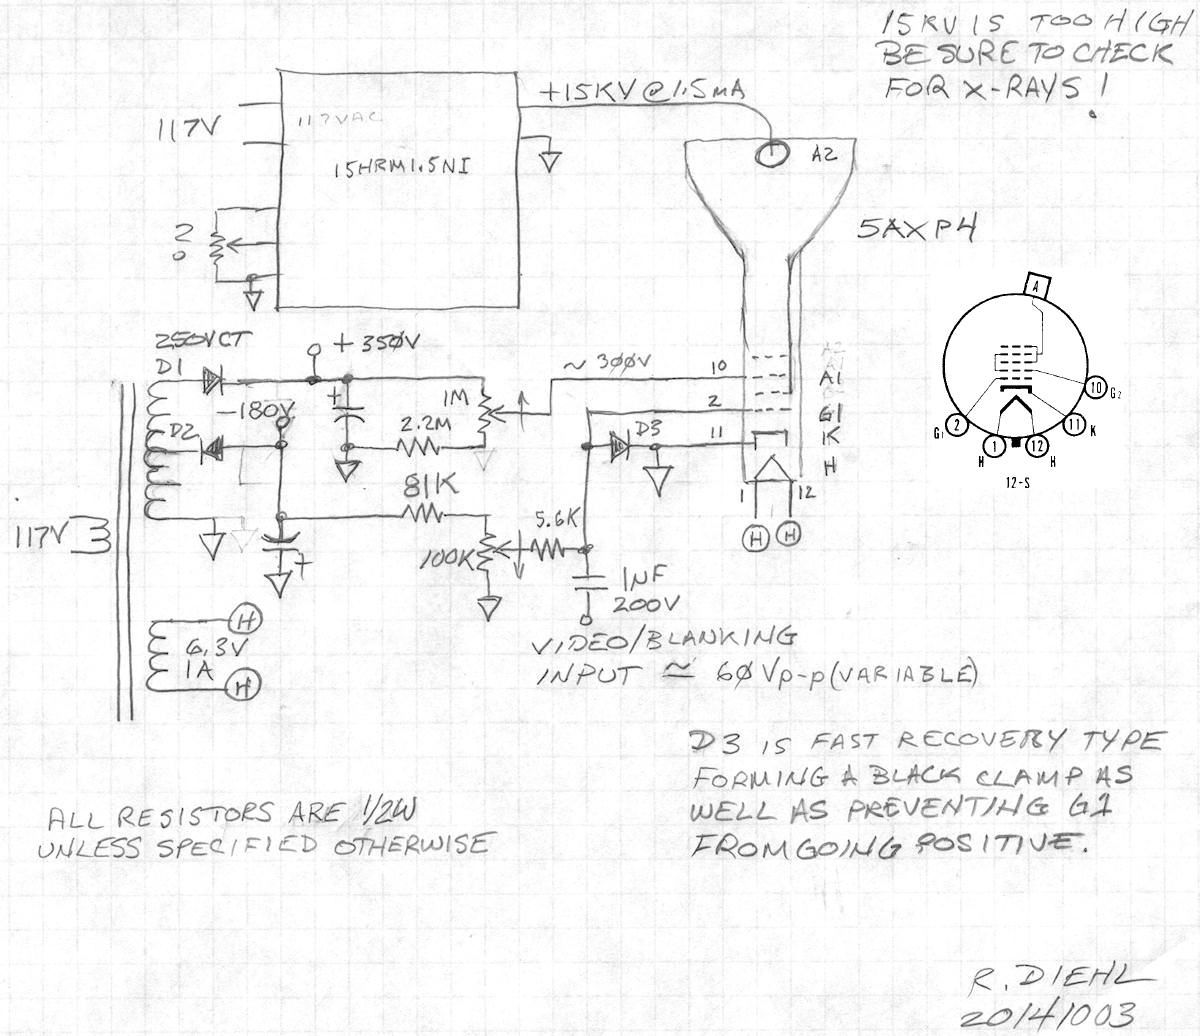 Labguys World Cyclops The 5axp4 Project Fuse Box Video Tube First Schematic Shows Scope Tv Crt Electron Gun Voltage Divider This Is Powered By Emco 3kv High Brick Power Supply